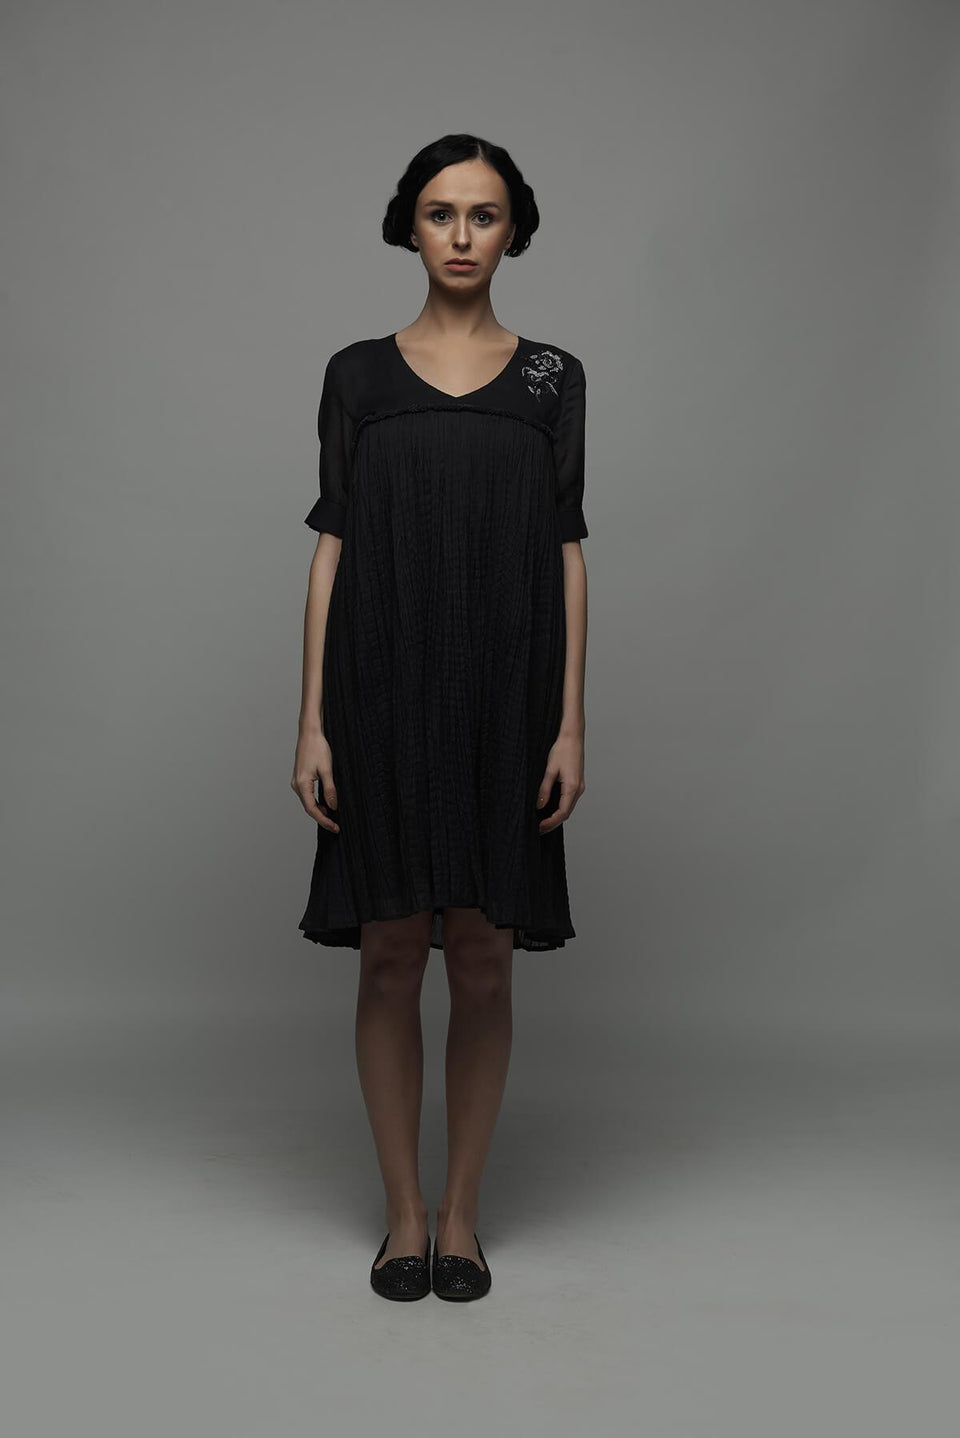 The Chimera Dress in Black